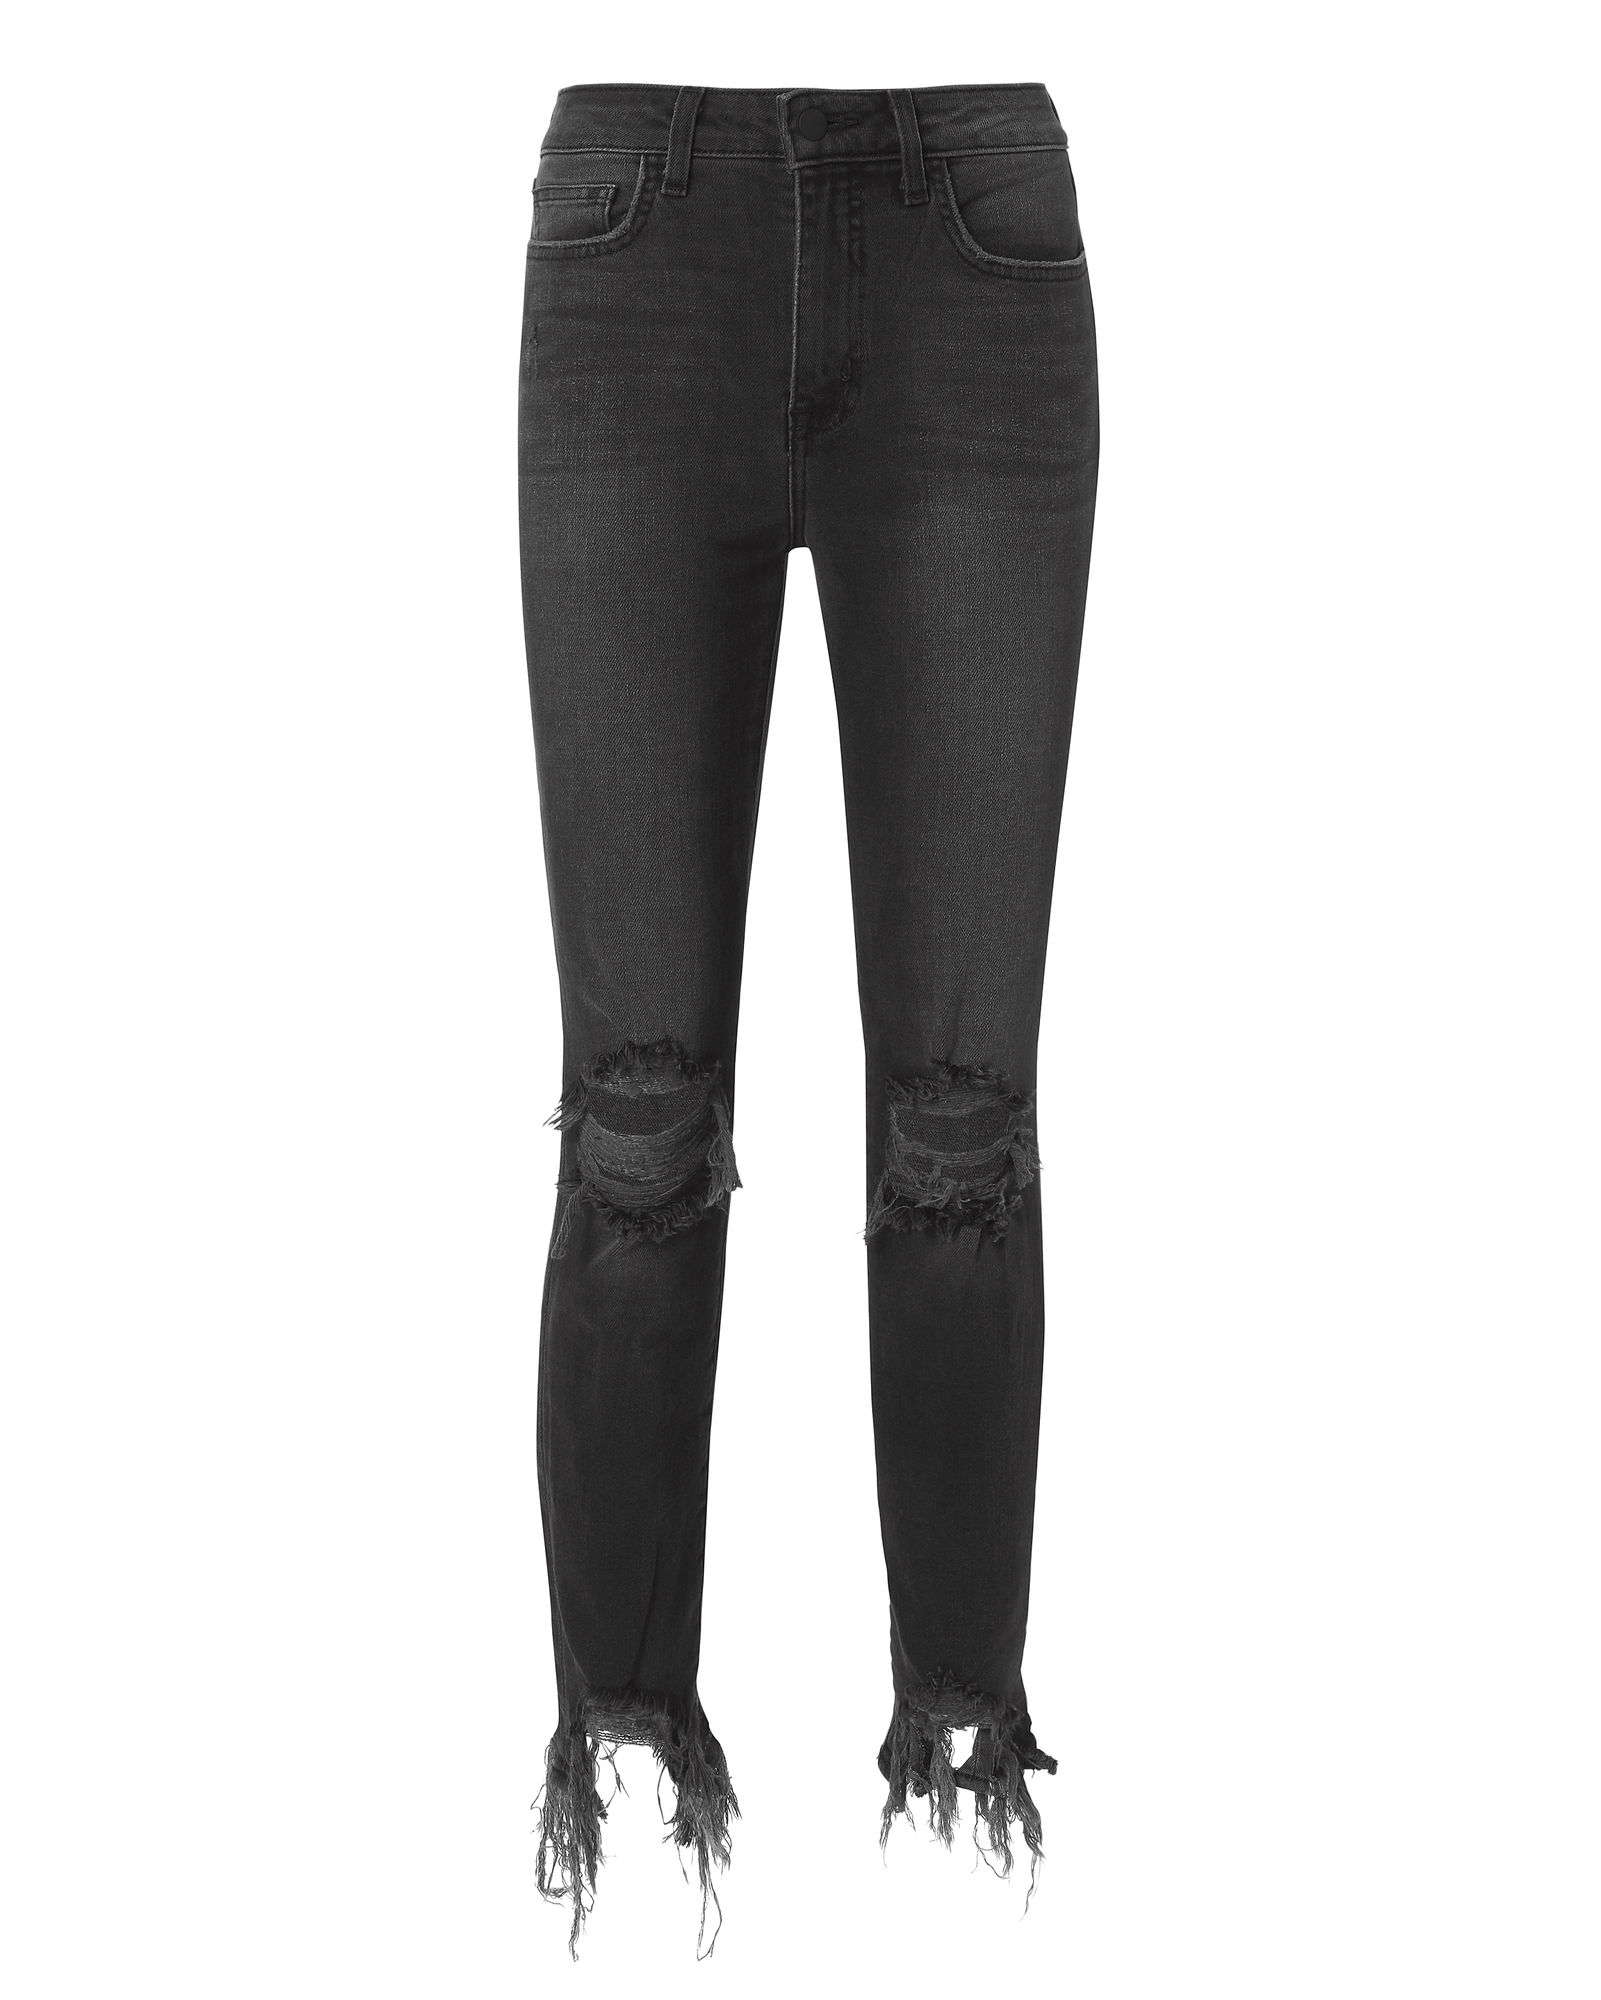 L'Agence 'High Line' jeans in Nighttime Grey, $265